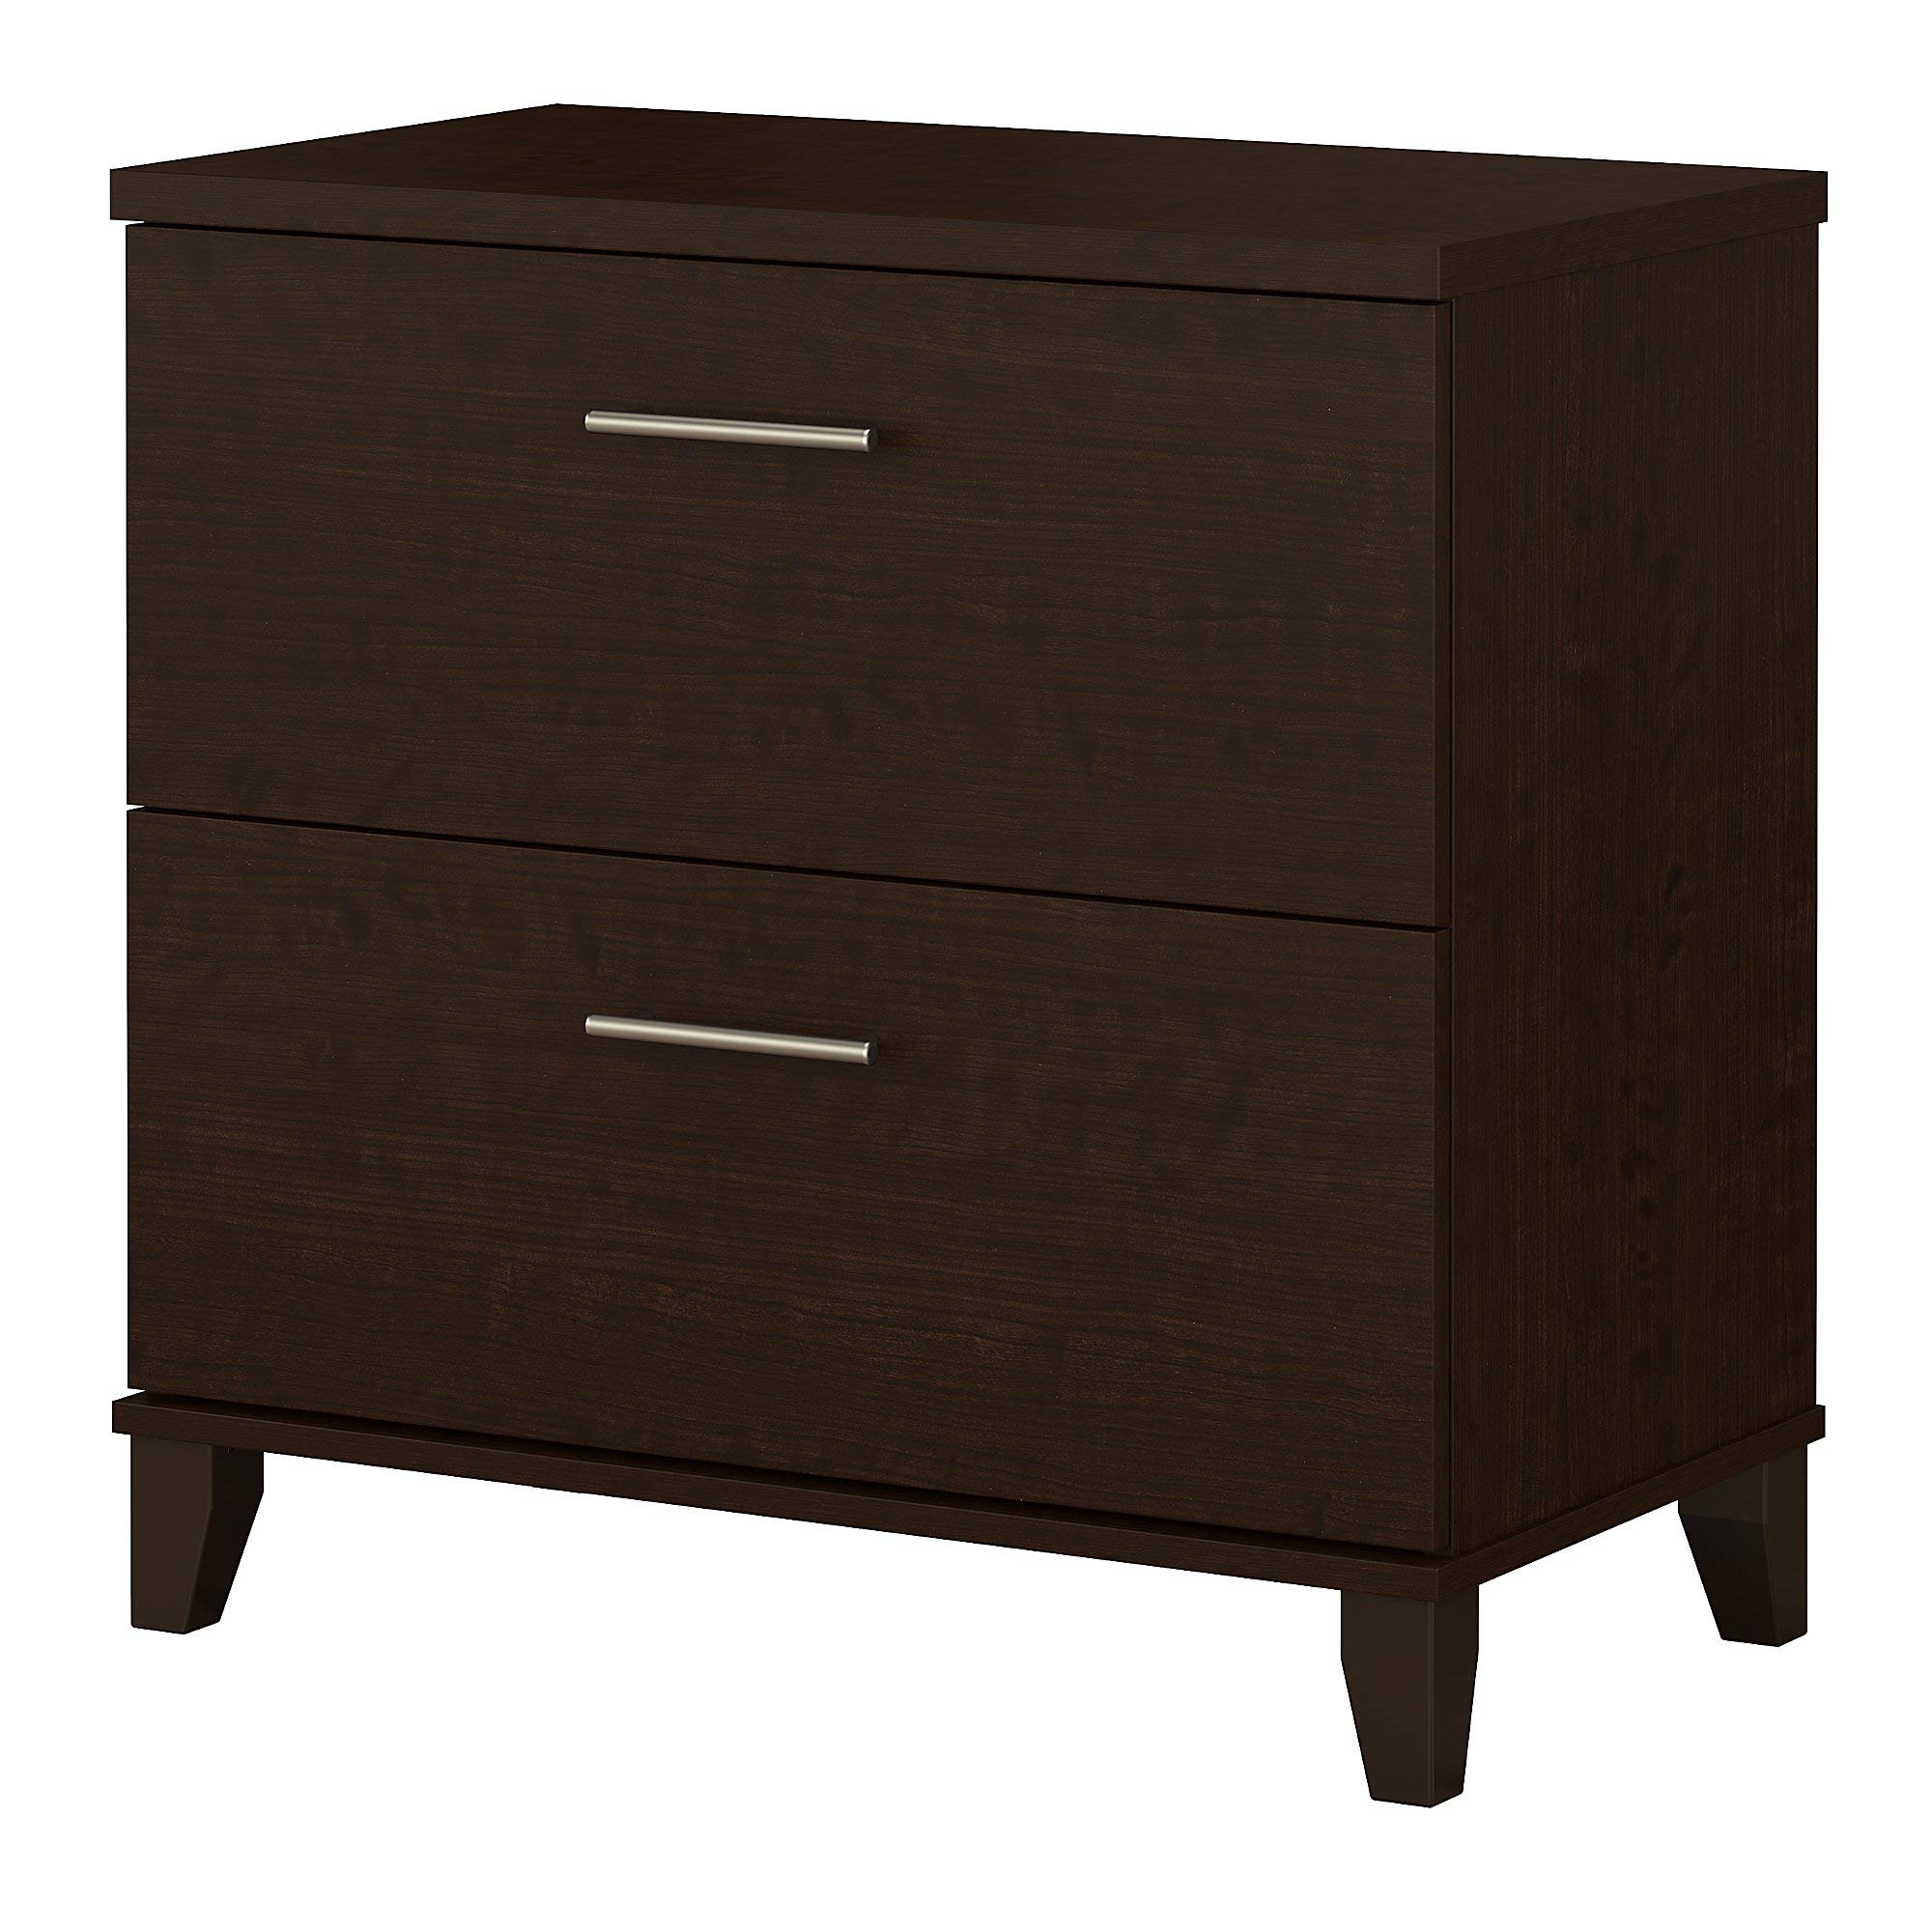 Bush Furniture Somerset Lateral File Cabinet in Mocha Cherry by Bush Furniture